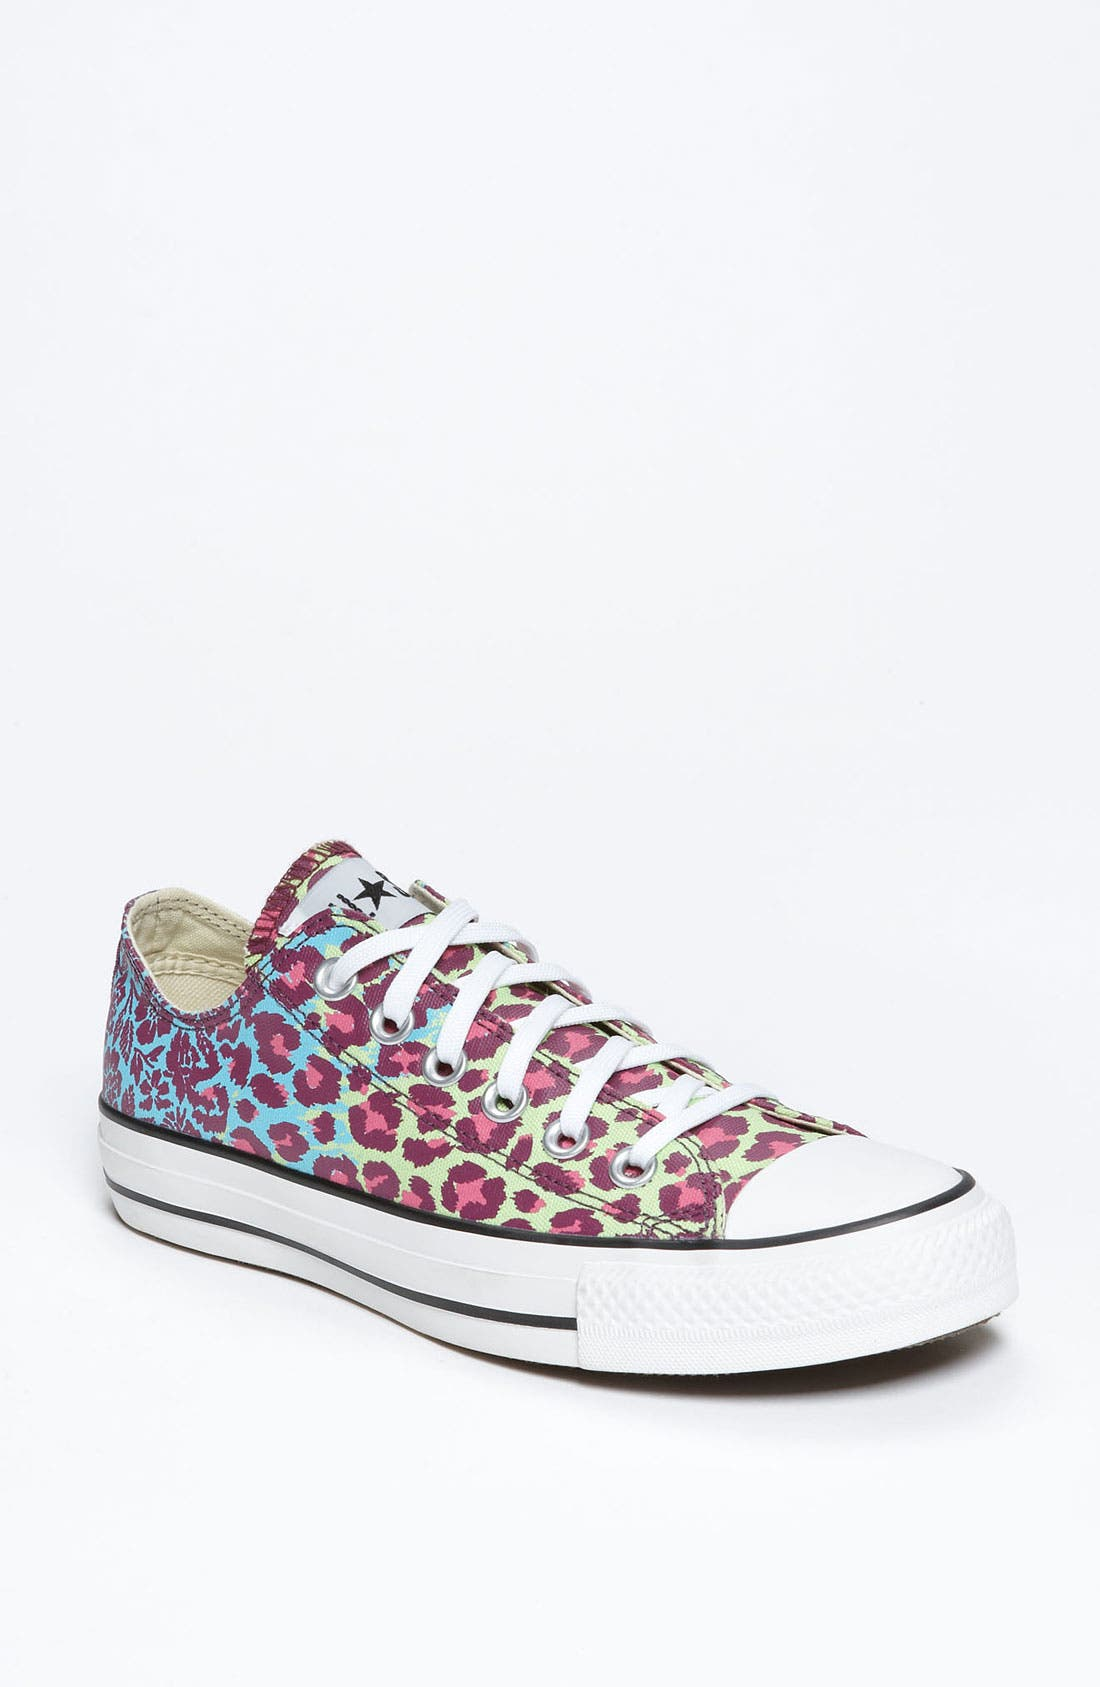 Main Image - Converse Chuck Taylor® All Star® Animal Print Sneaker (Women)